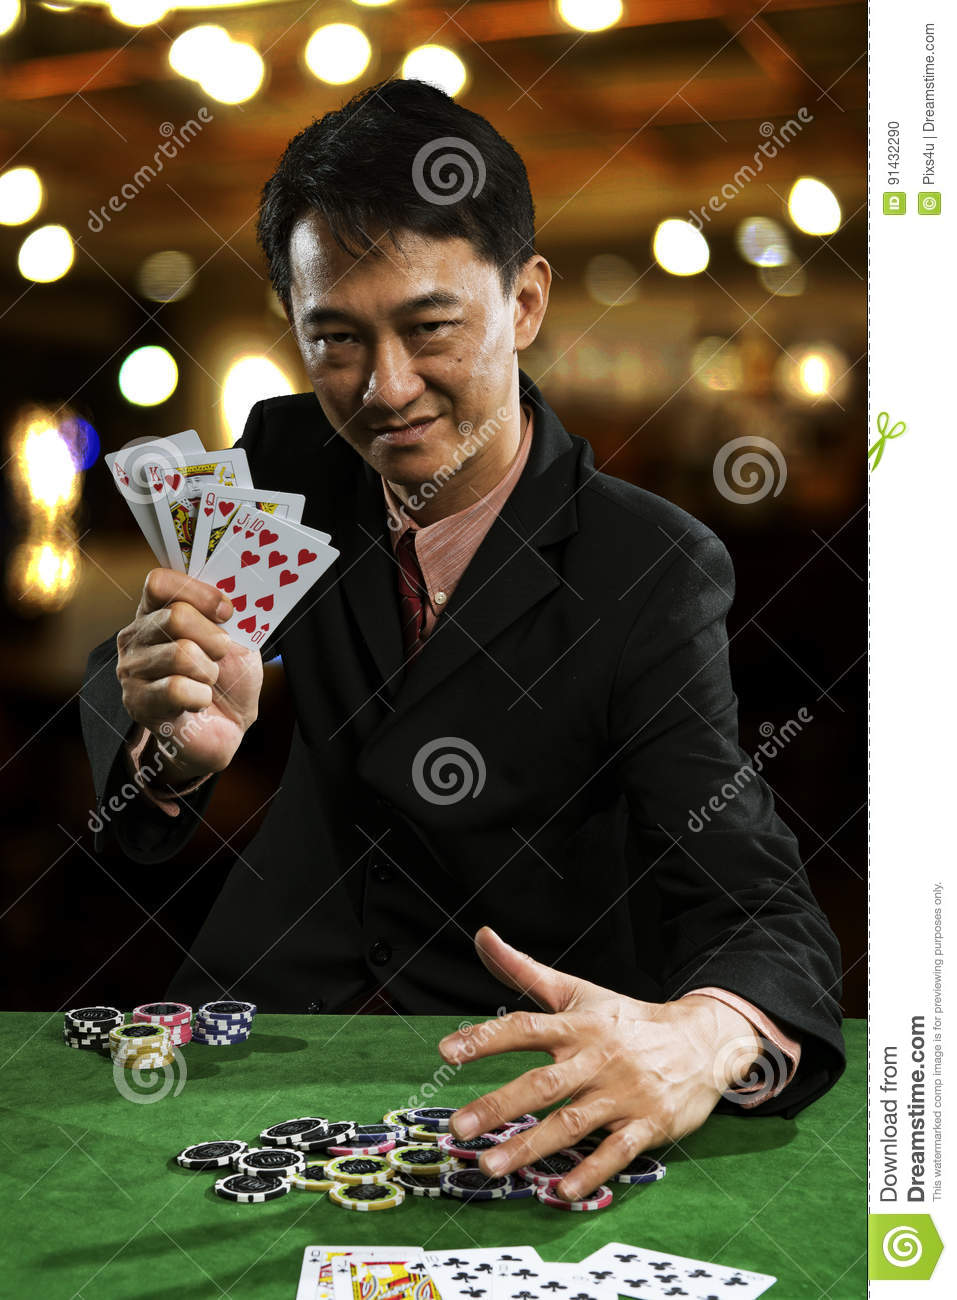 A man wearing a suit holding Hearts Suit Straight Flush